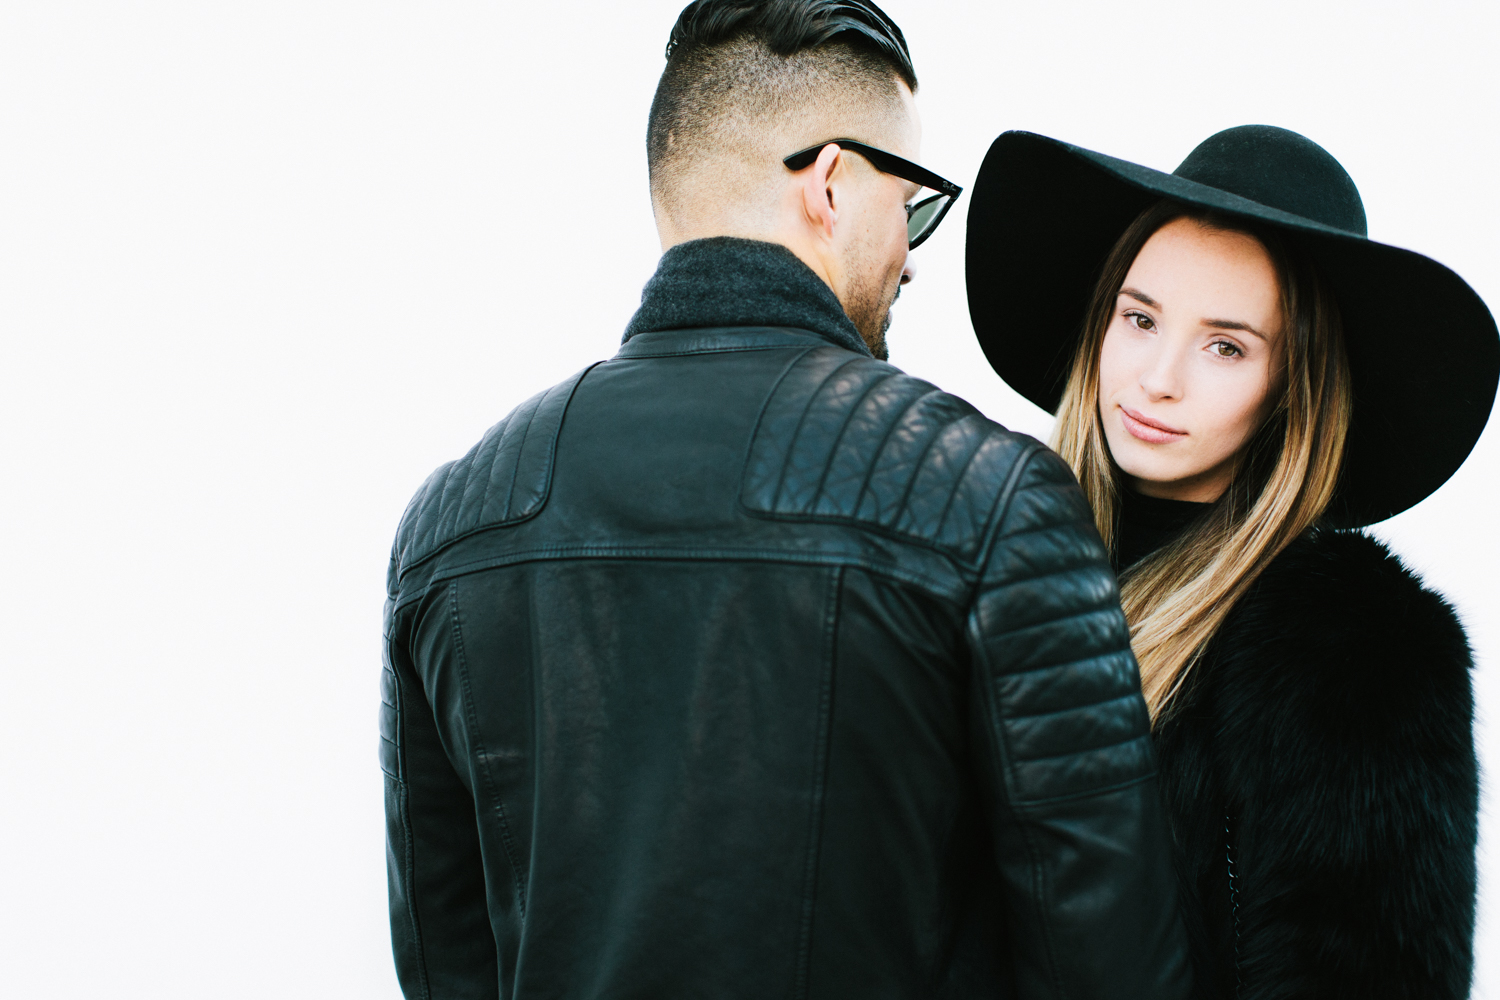 Jodi-Blk-fashion-blogger-Jose-Lopez-fit-michael-rousseau-photography-streetwear-fashion-engagement-session028.jpg